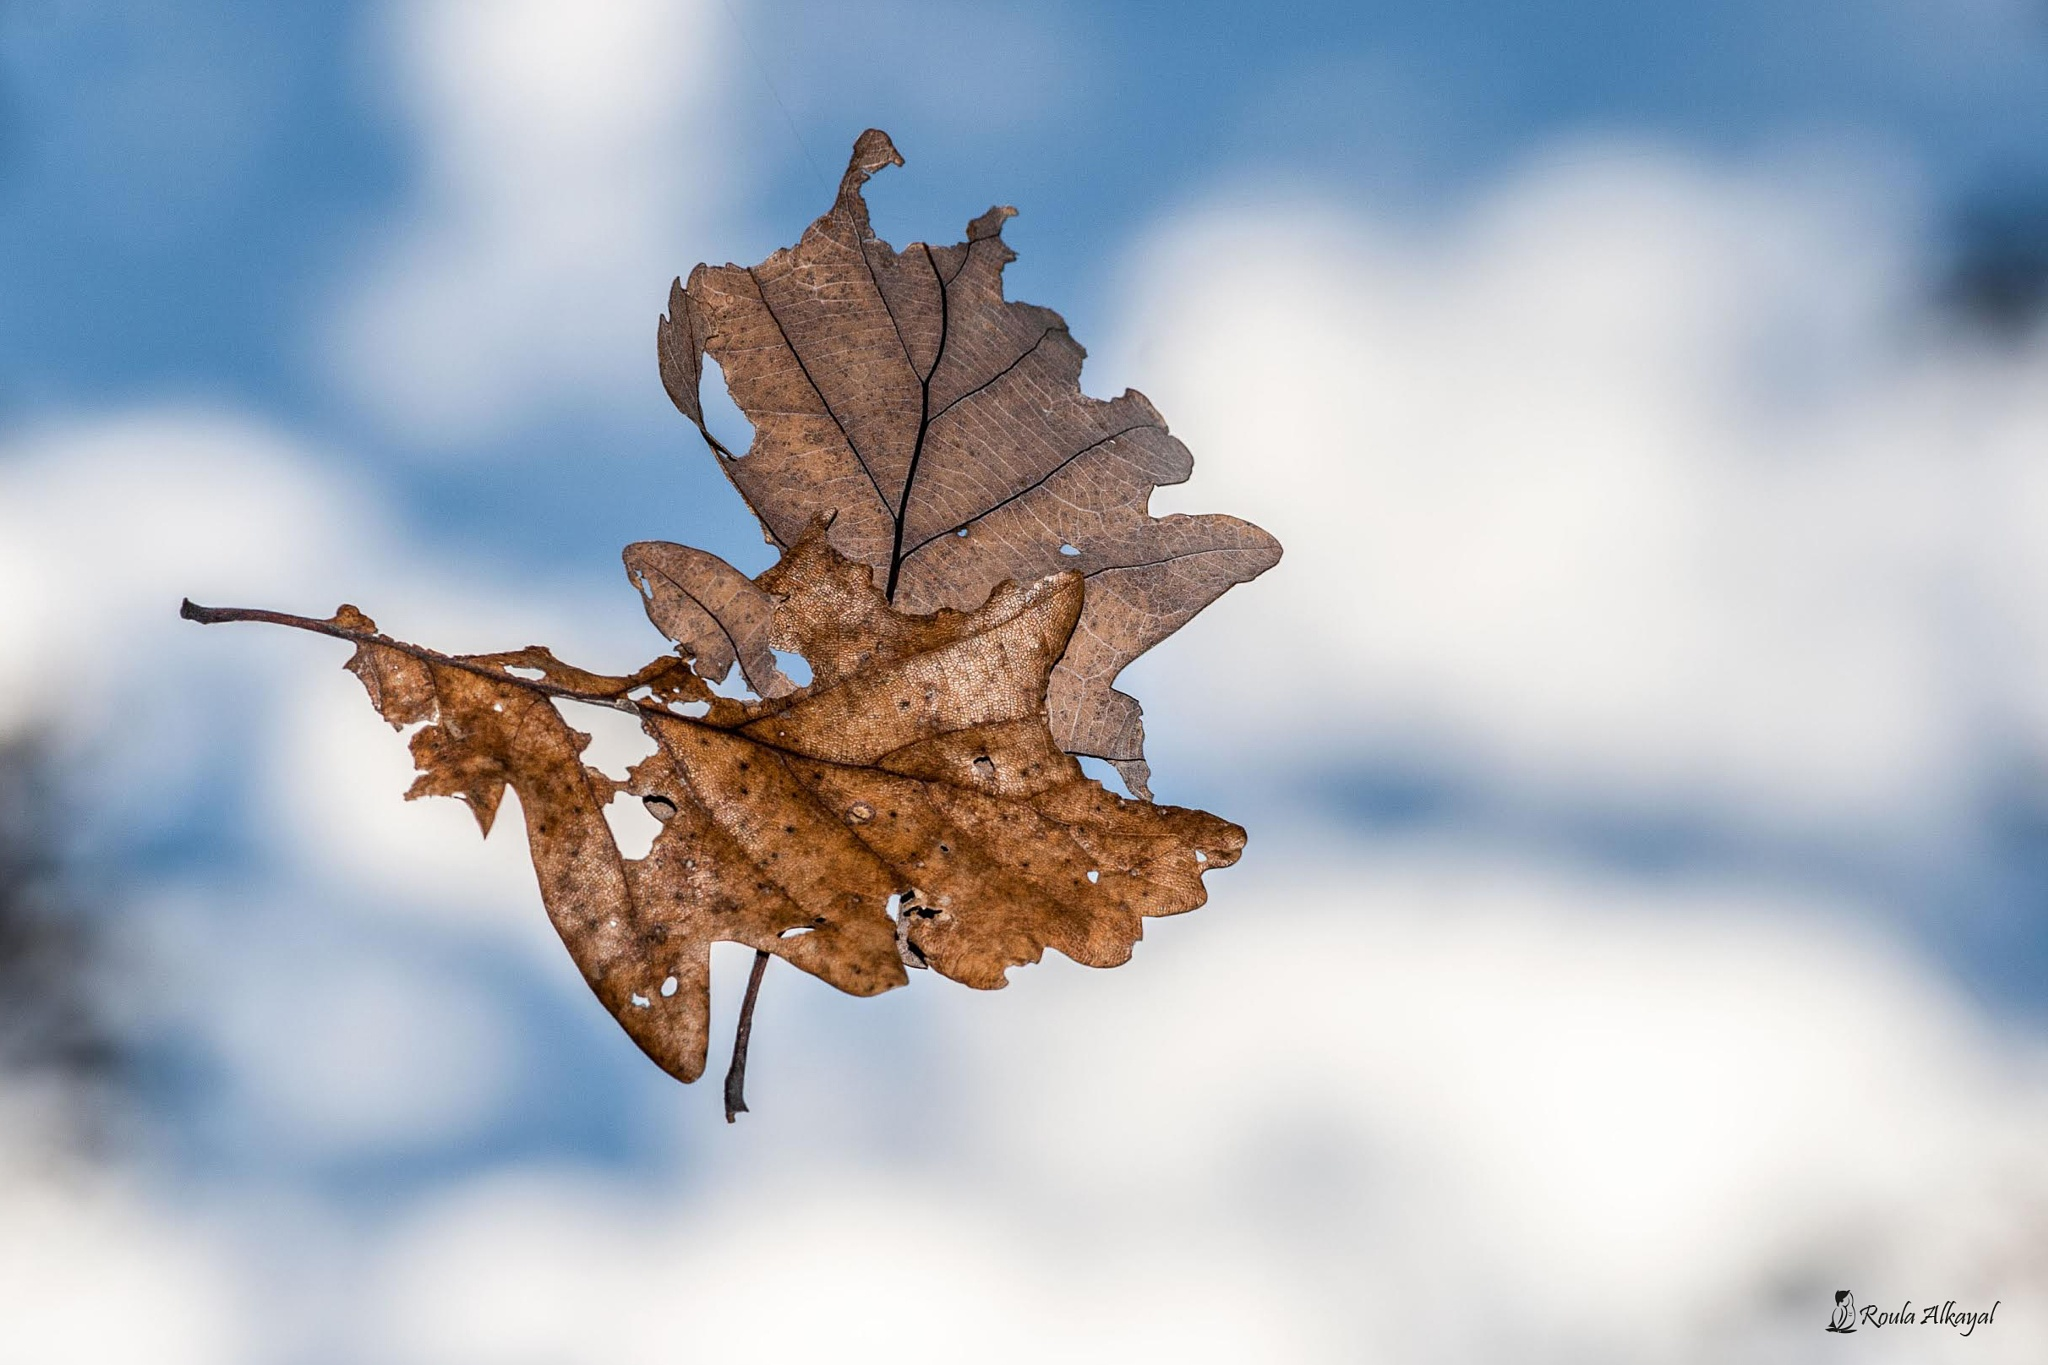 leaf by Roula Kayal